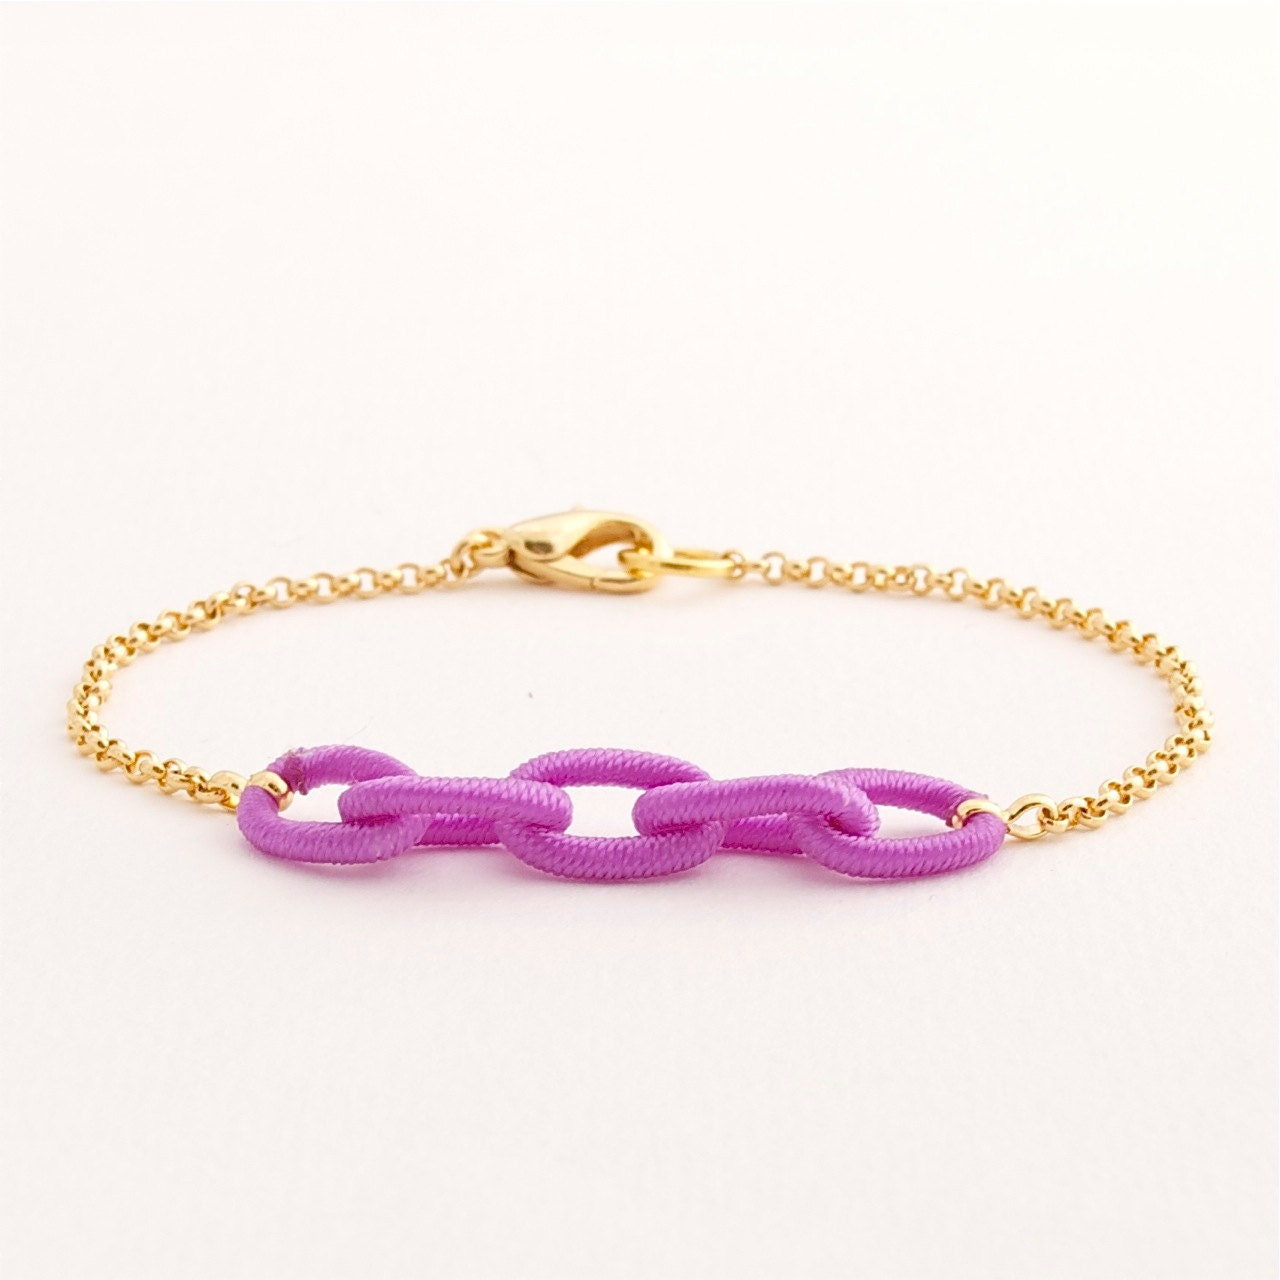 Colored & Gold Chain Bracelet . orchid purple . handmade jewelry by MoshPoshDesigns